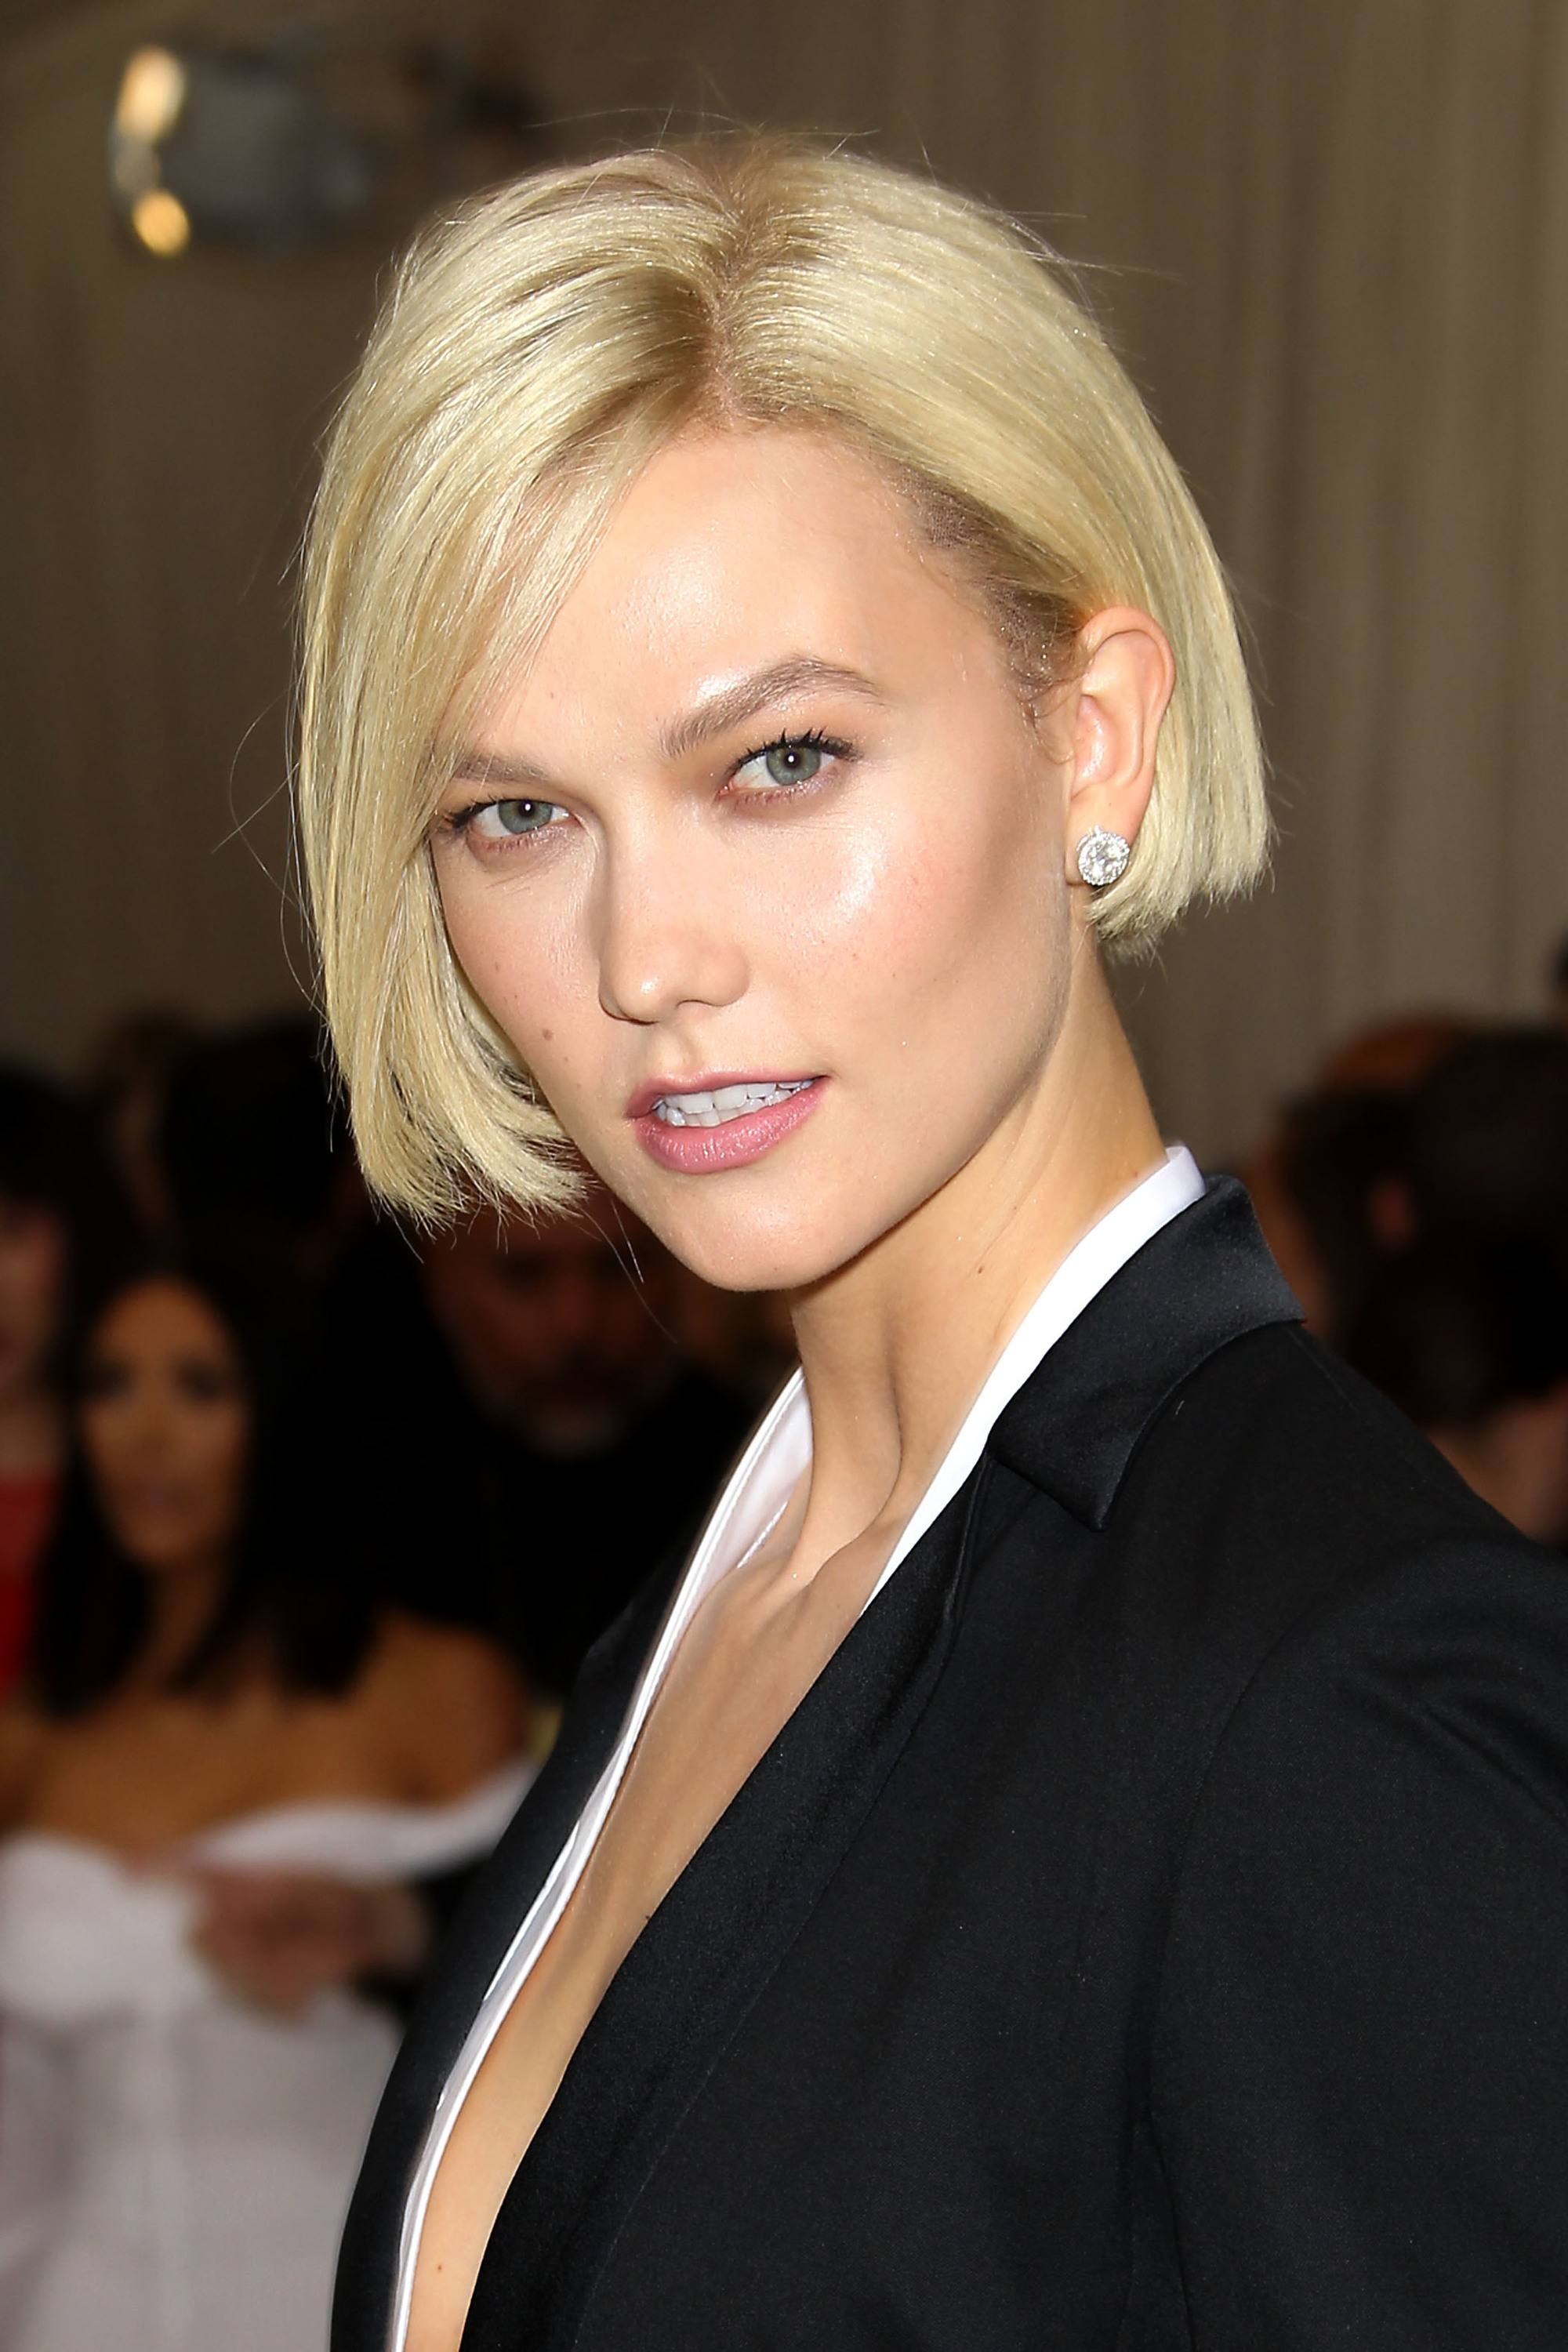 Bob hairstyle: Karlie Kloss with a very short blonde bob